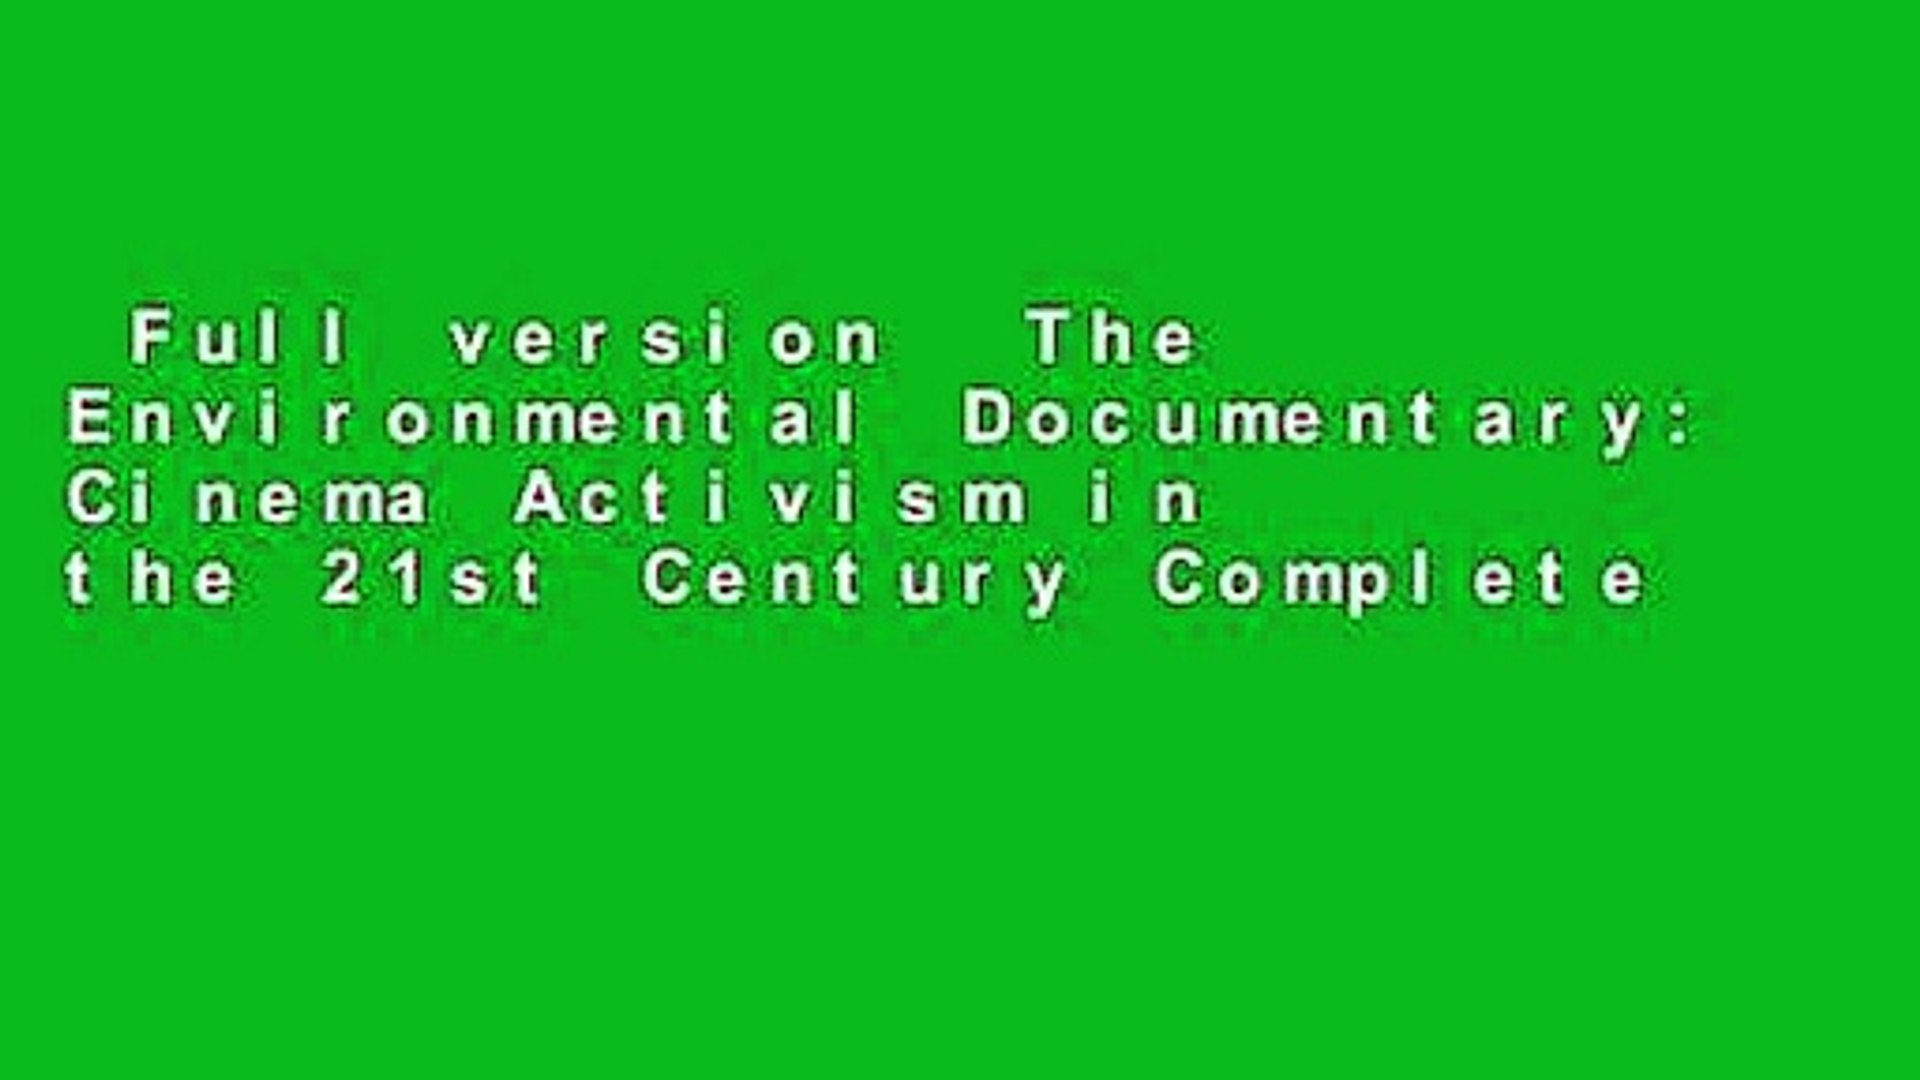 Full version  The Environmental Documentary: Cinema Activism in the 21st Century Complete